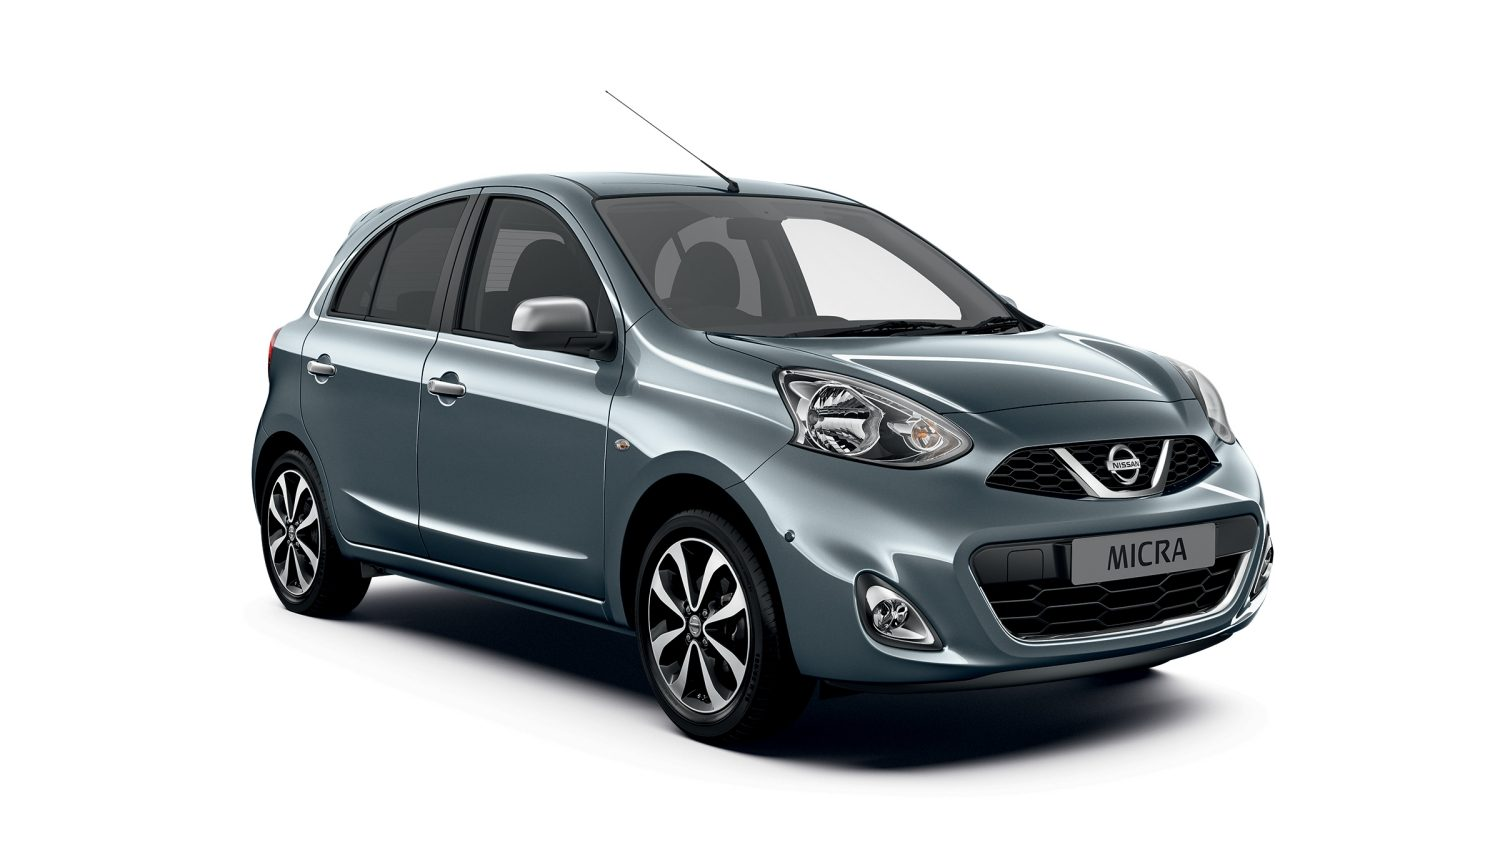 design nissan micra city car small car nissan. Black Bedroom Furniture Sets. Home Design Ideas